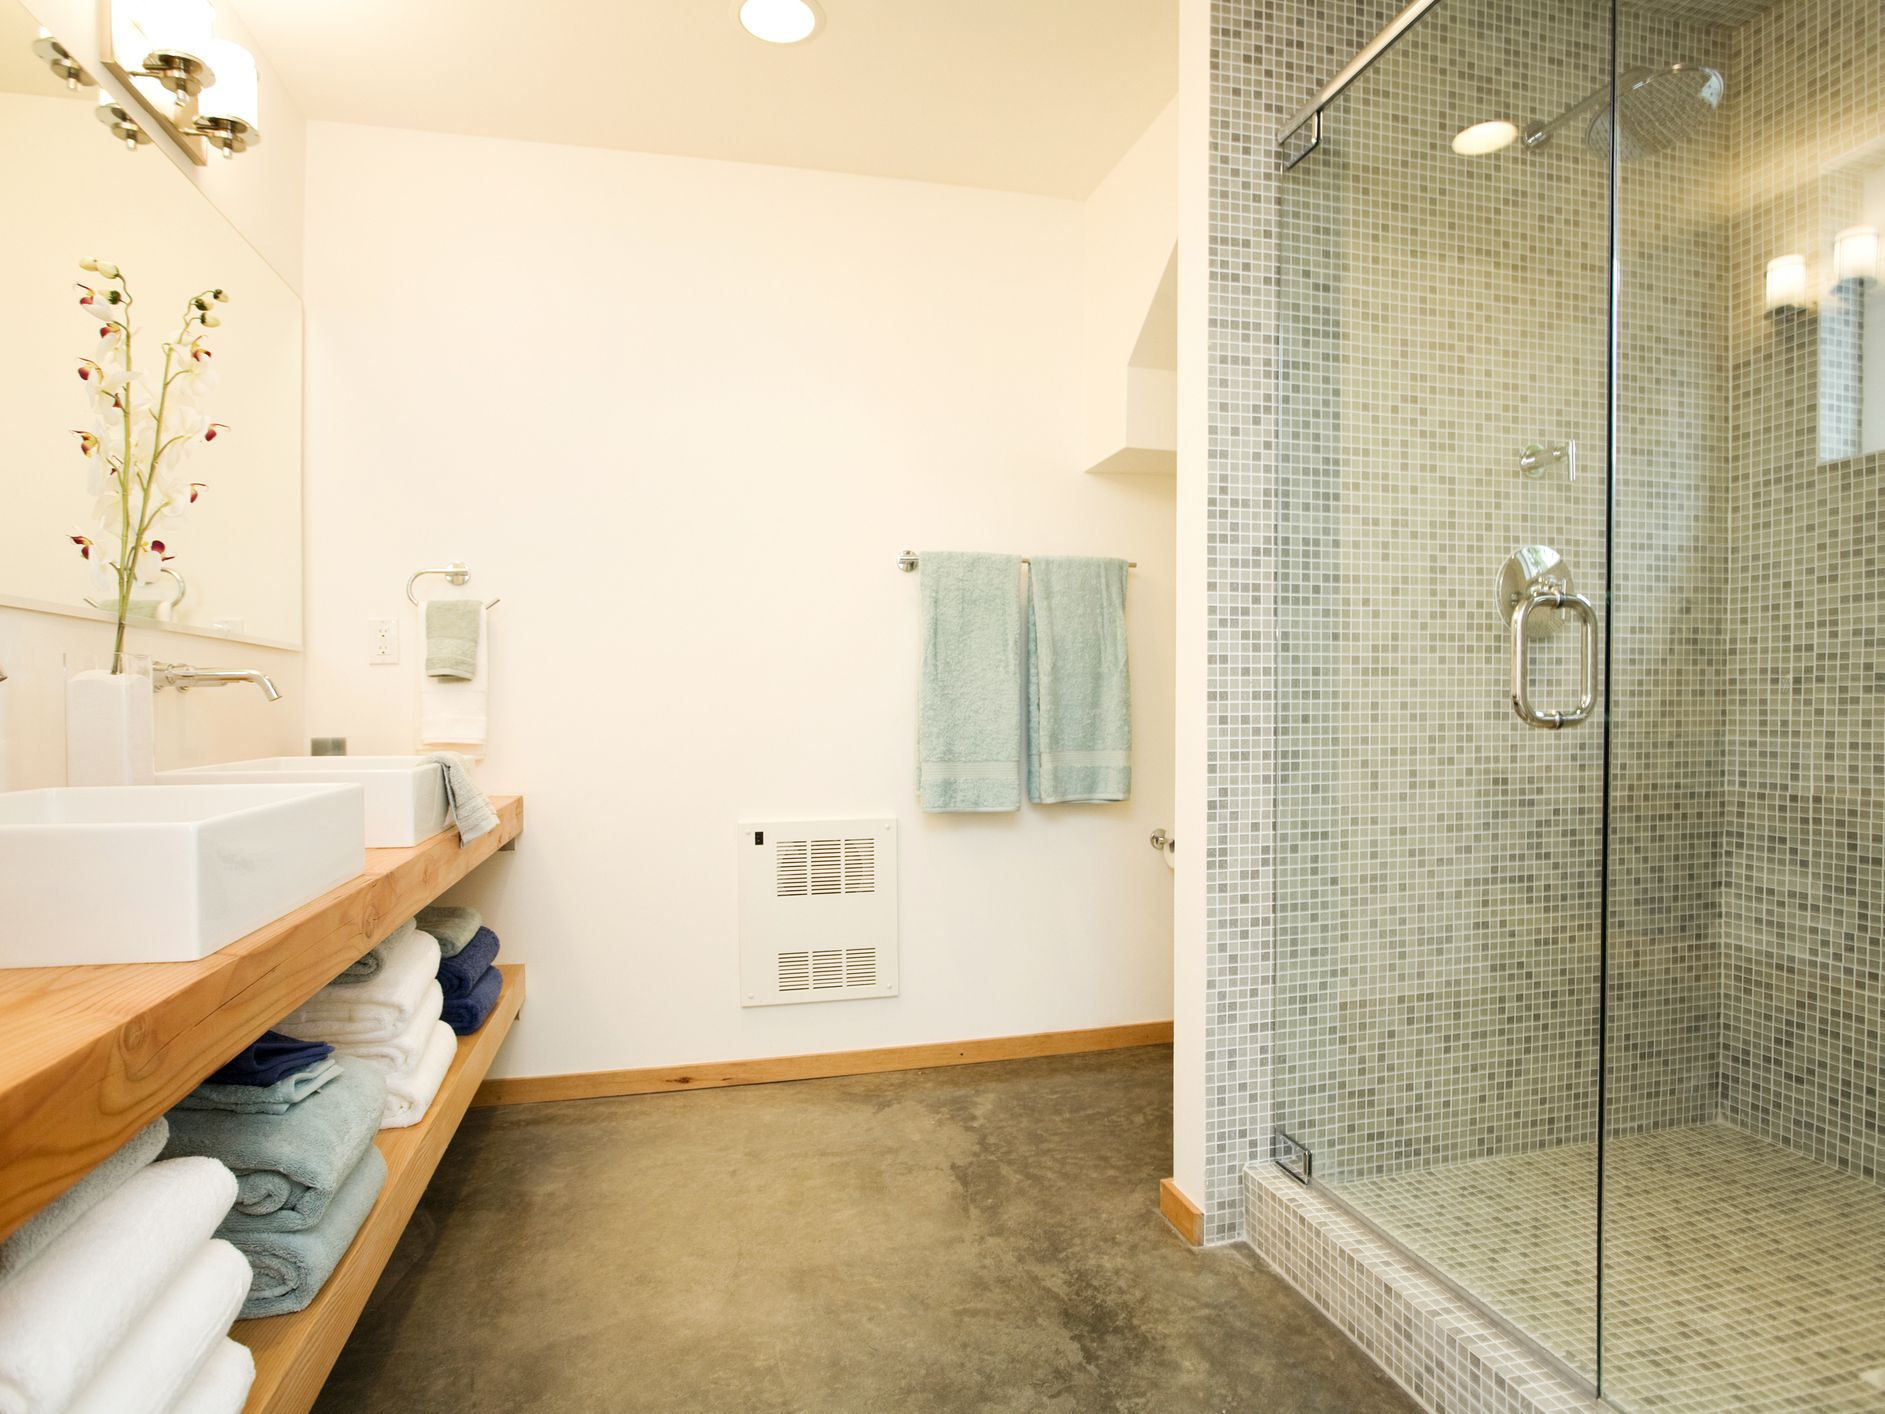 Concrete Bathroom Flooring Pros And Cons